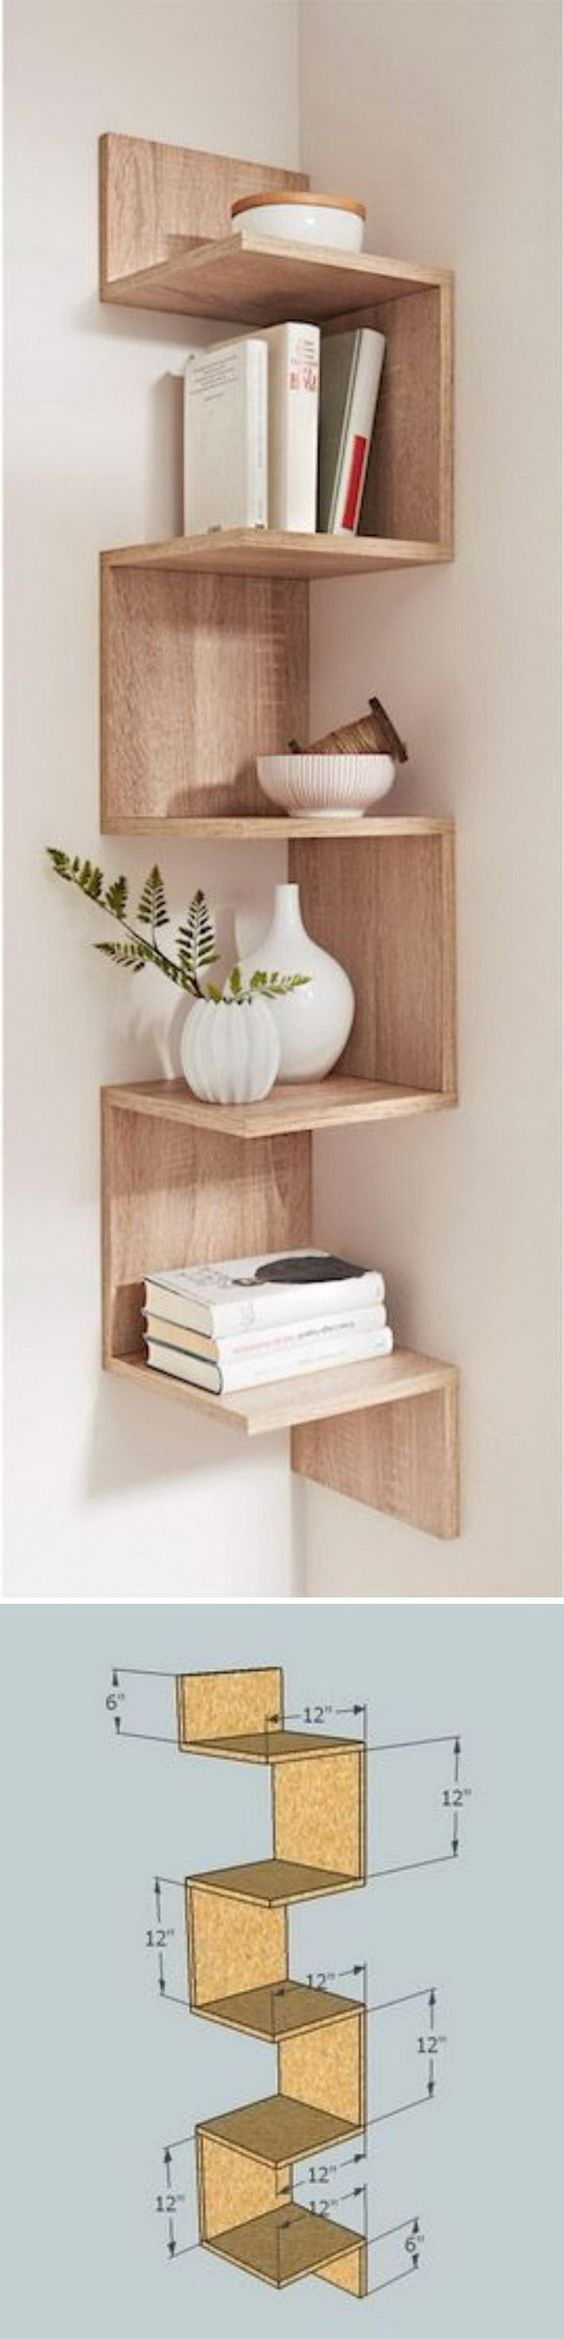 25 best ideas about bookshelves on pinterest homemade - Creative uses of floating shelves ikea for stylish storage units ...